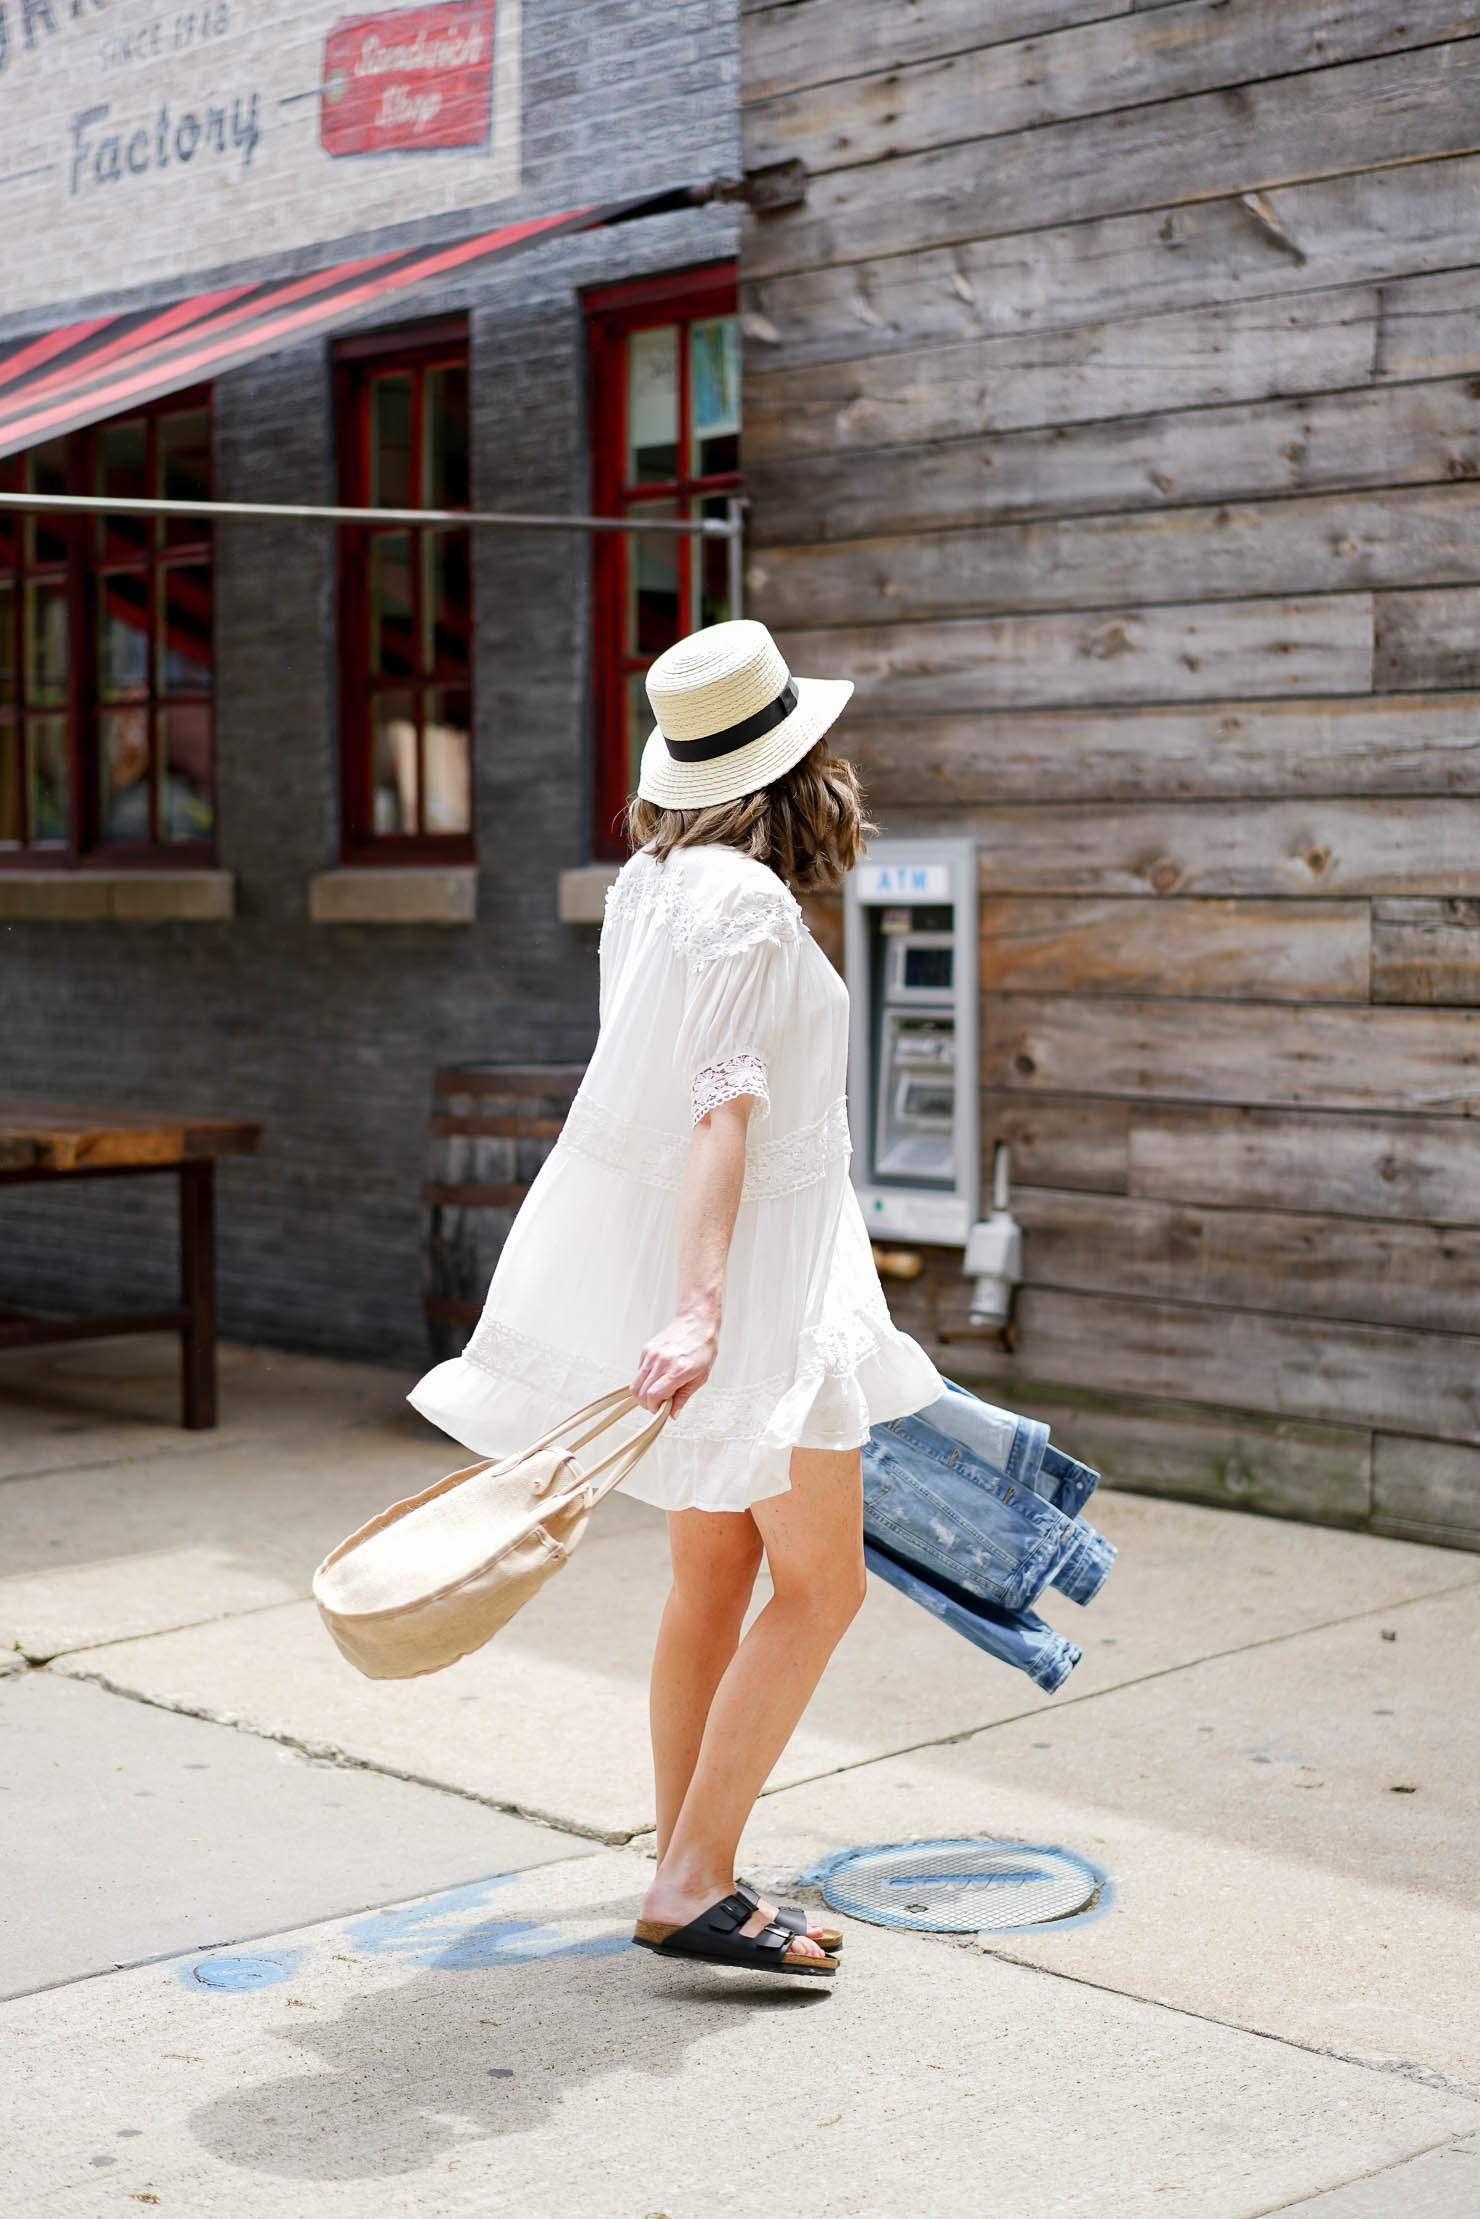 white lace dress, lace detail swing dress, chicago eats, target who what wear weave circle bag, summer outfit, panama hat, corned beef factory